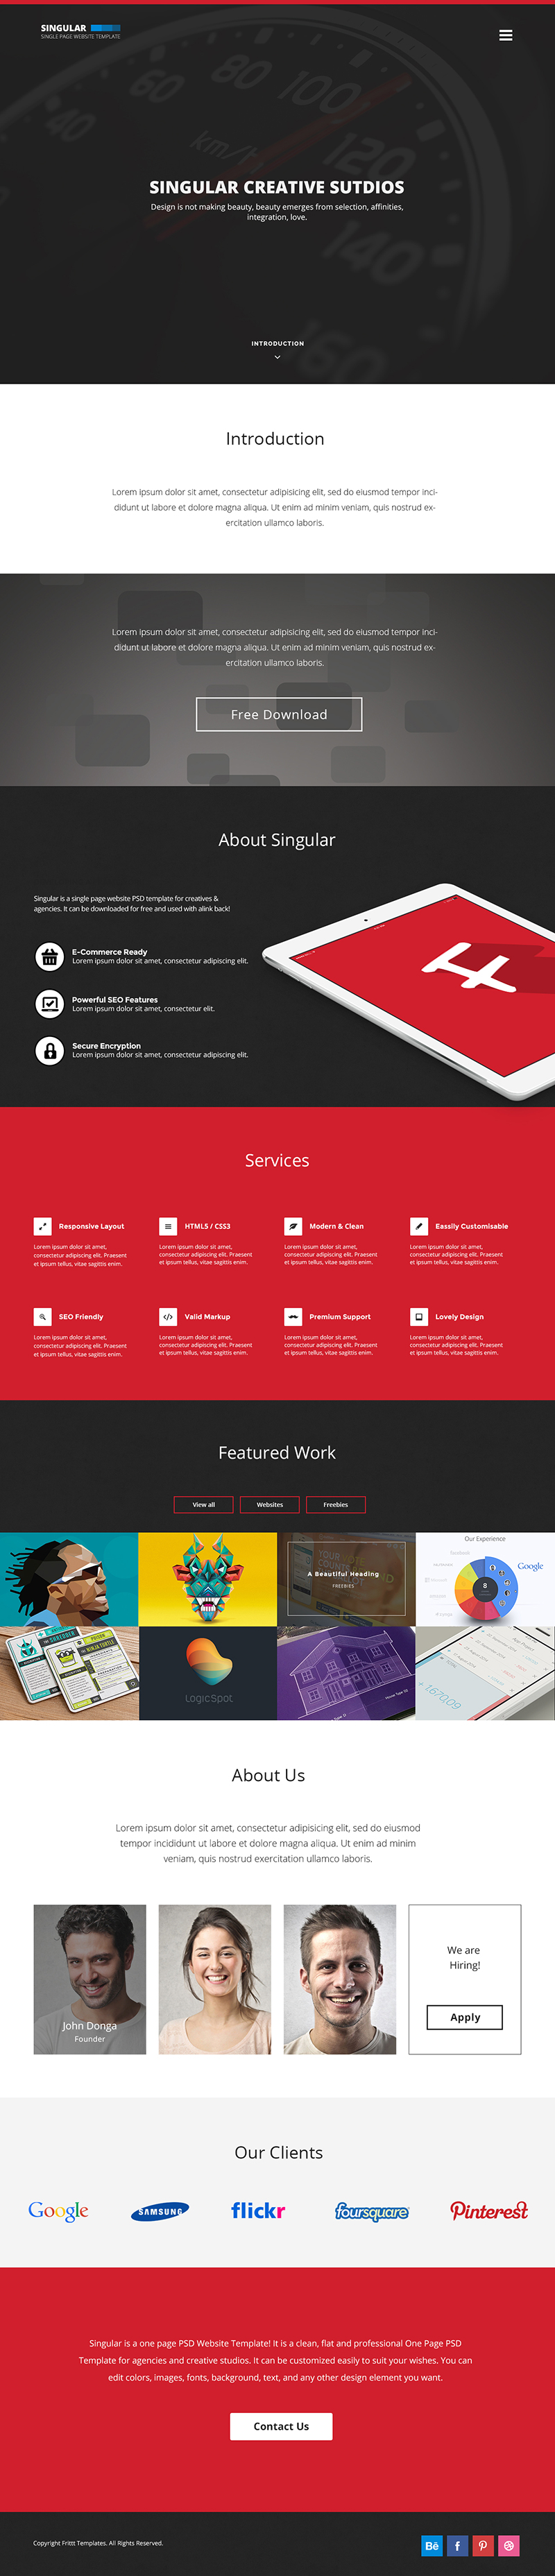 15 free psd website templates 2015 free psd templates this one page website template could be used for different kinds of sites such as agency portfolio landing page small business and freelancer sites fbccfo Choice Image